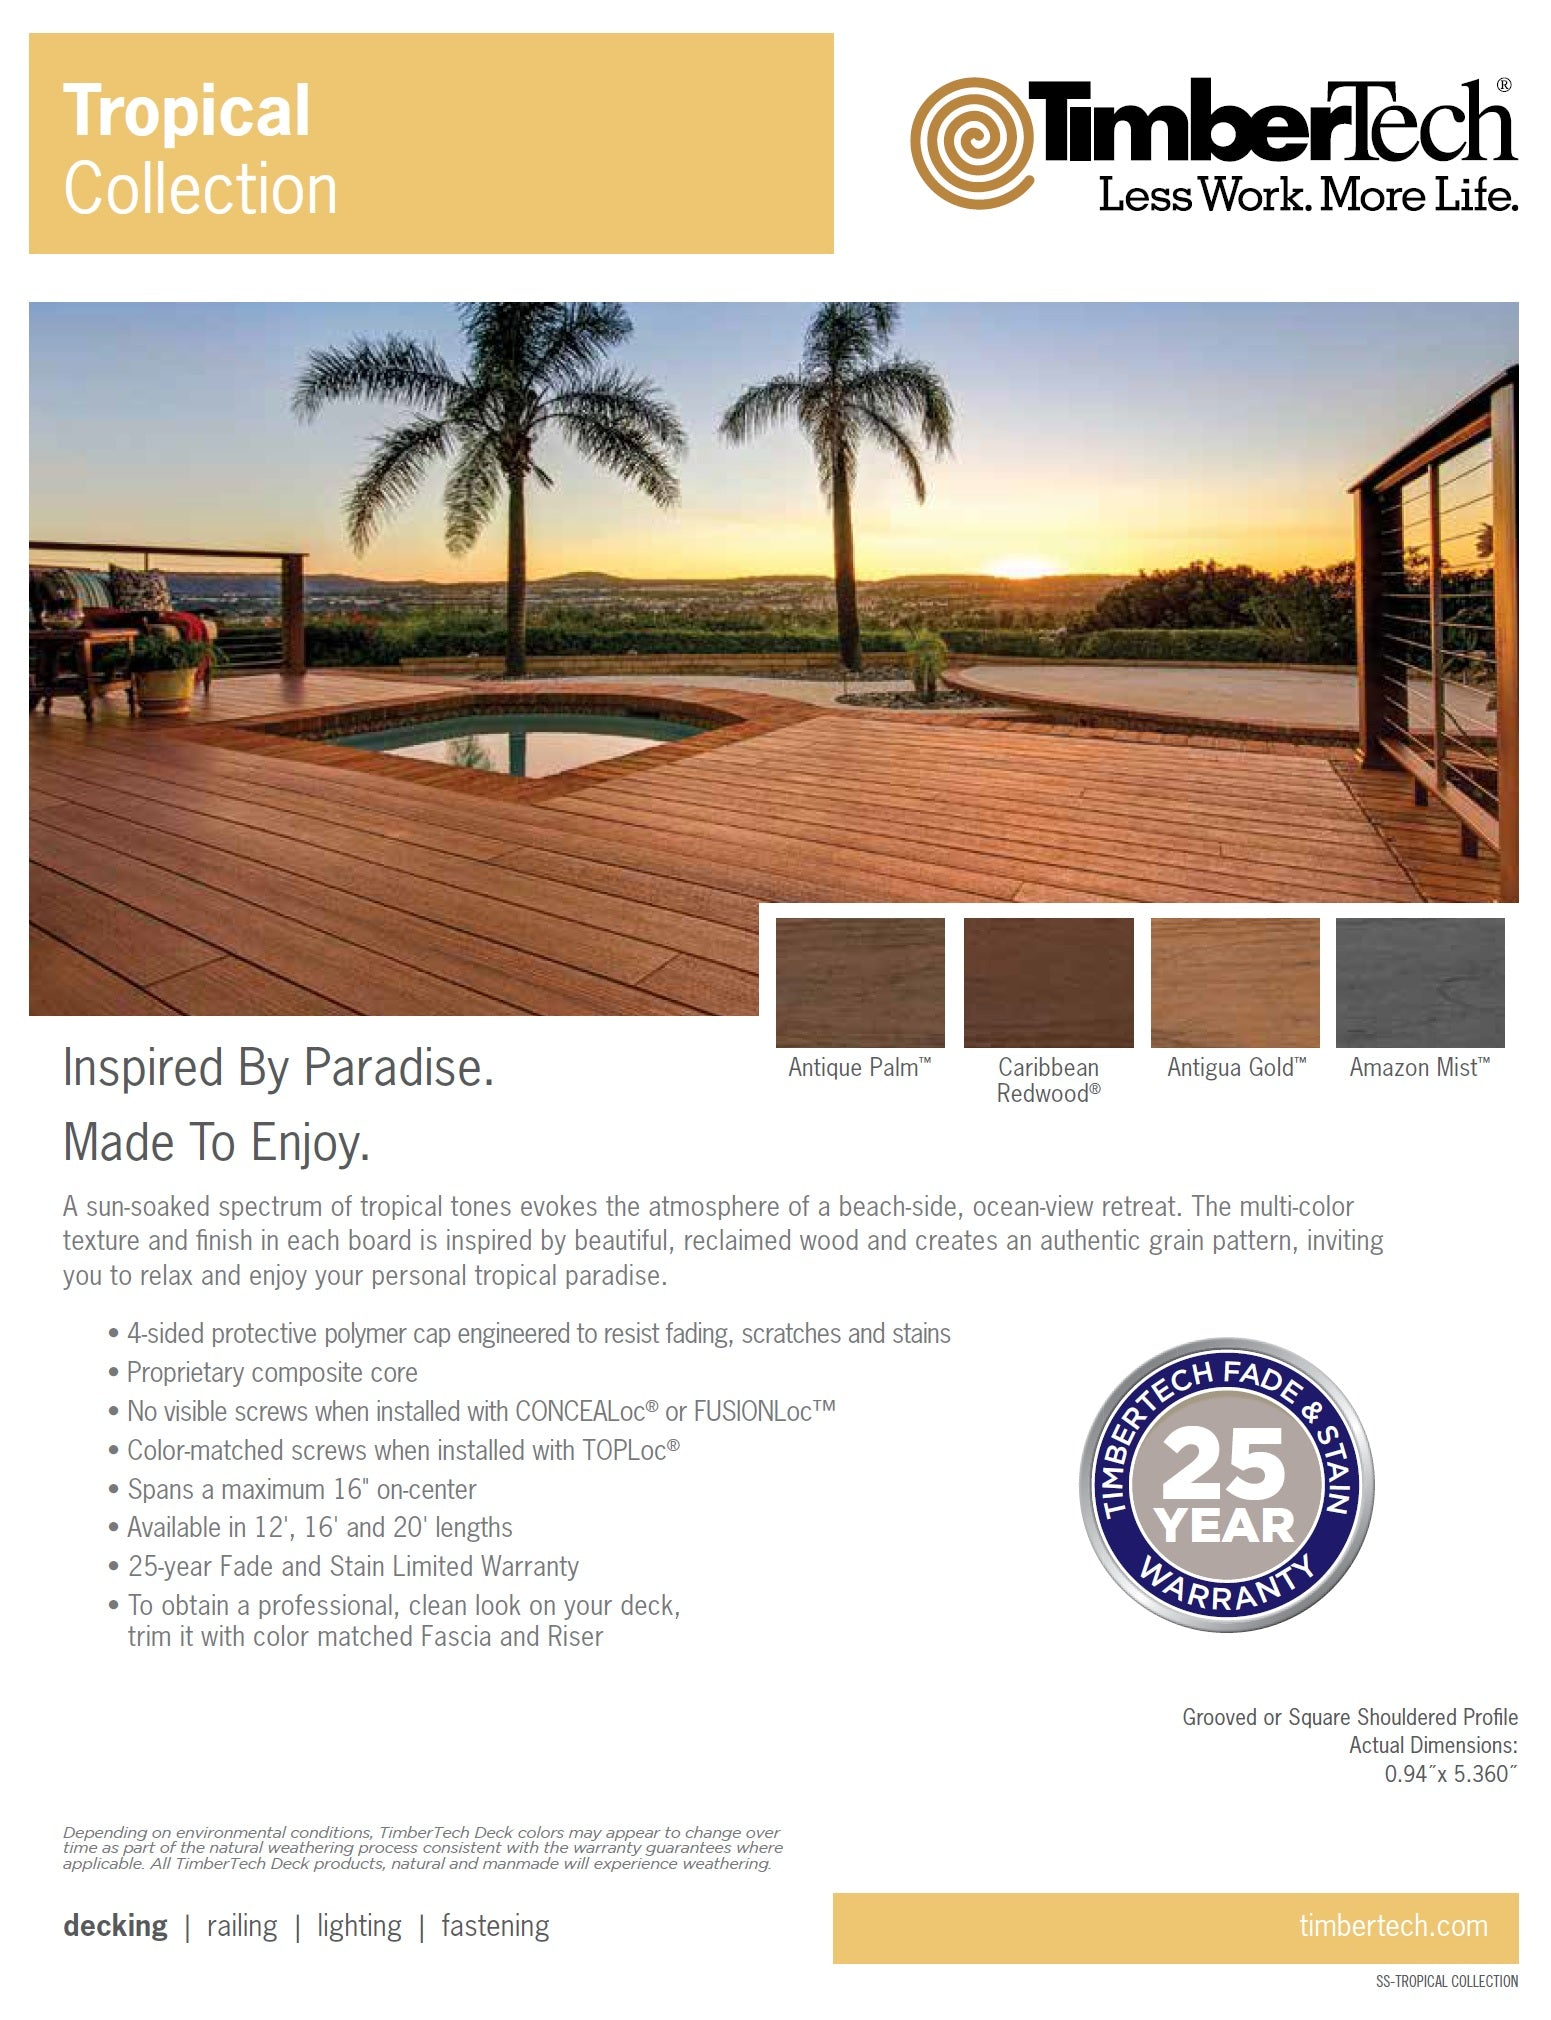 TimberTech Tropical Capped Composite Decking, Amazon Mist, Antigua Gold, Antique Palm, Solid Composite Decking